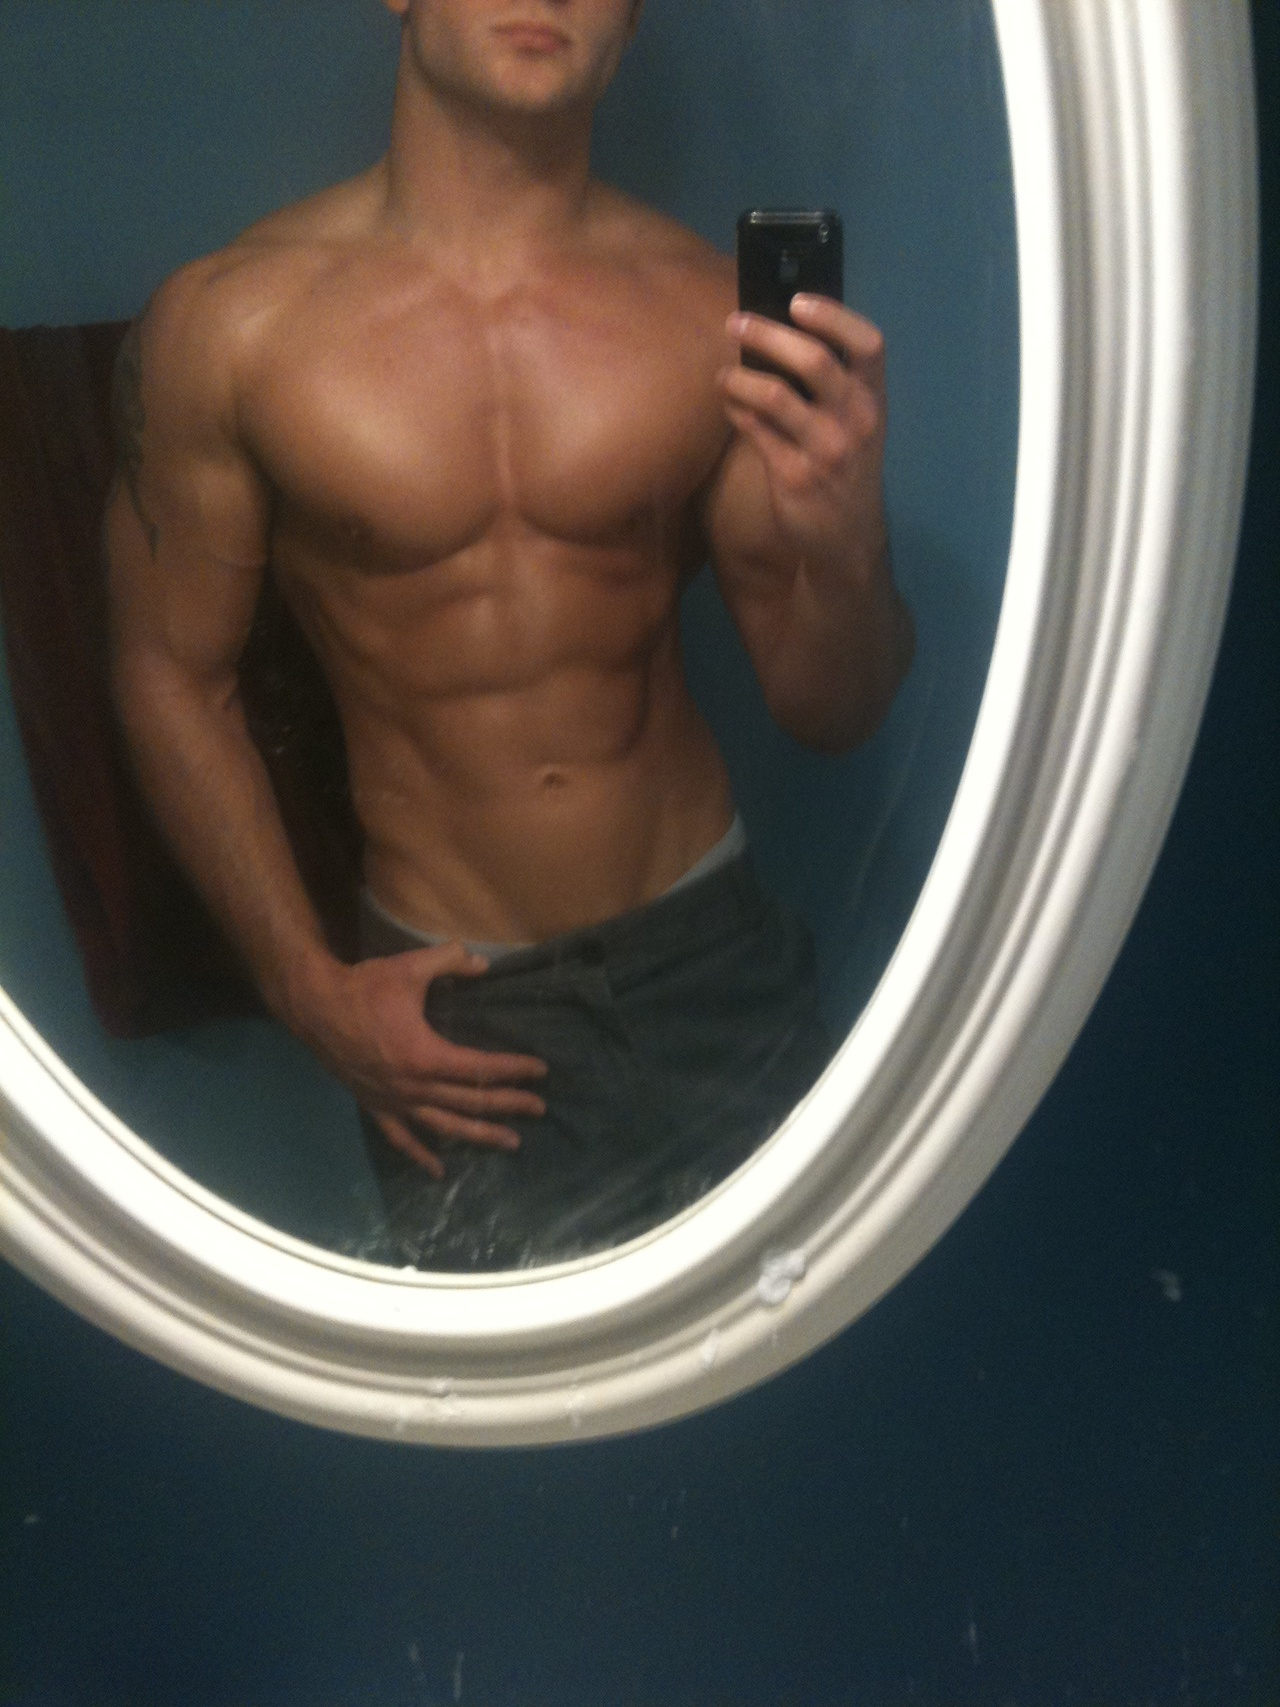 the ultimate male fitness model 6 pack abs pics motivation male